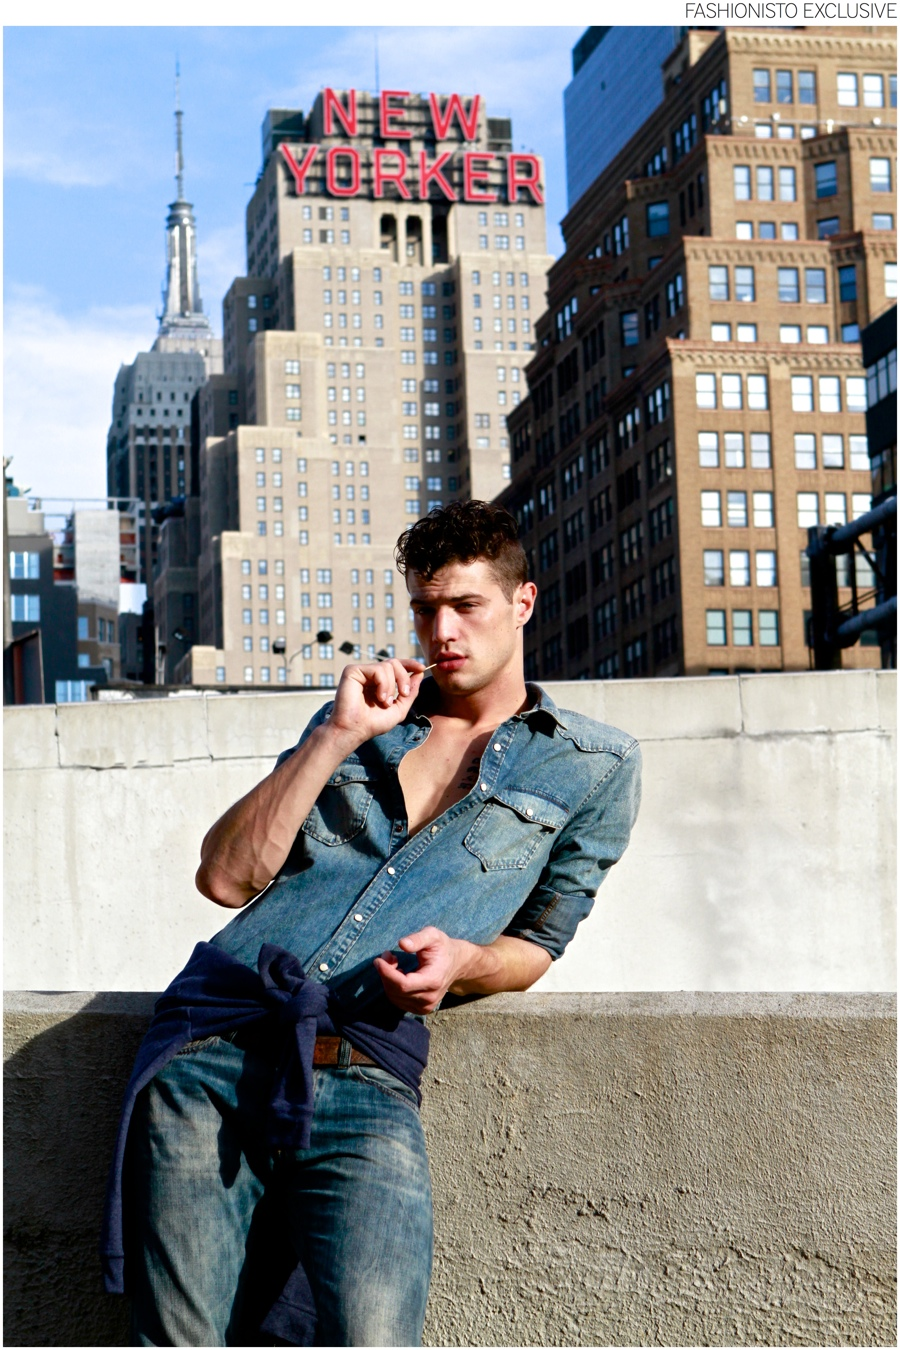 Fashionisto Exclusive: Andy Walters by Oscar Correcher